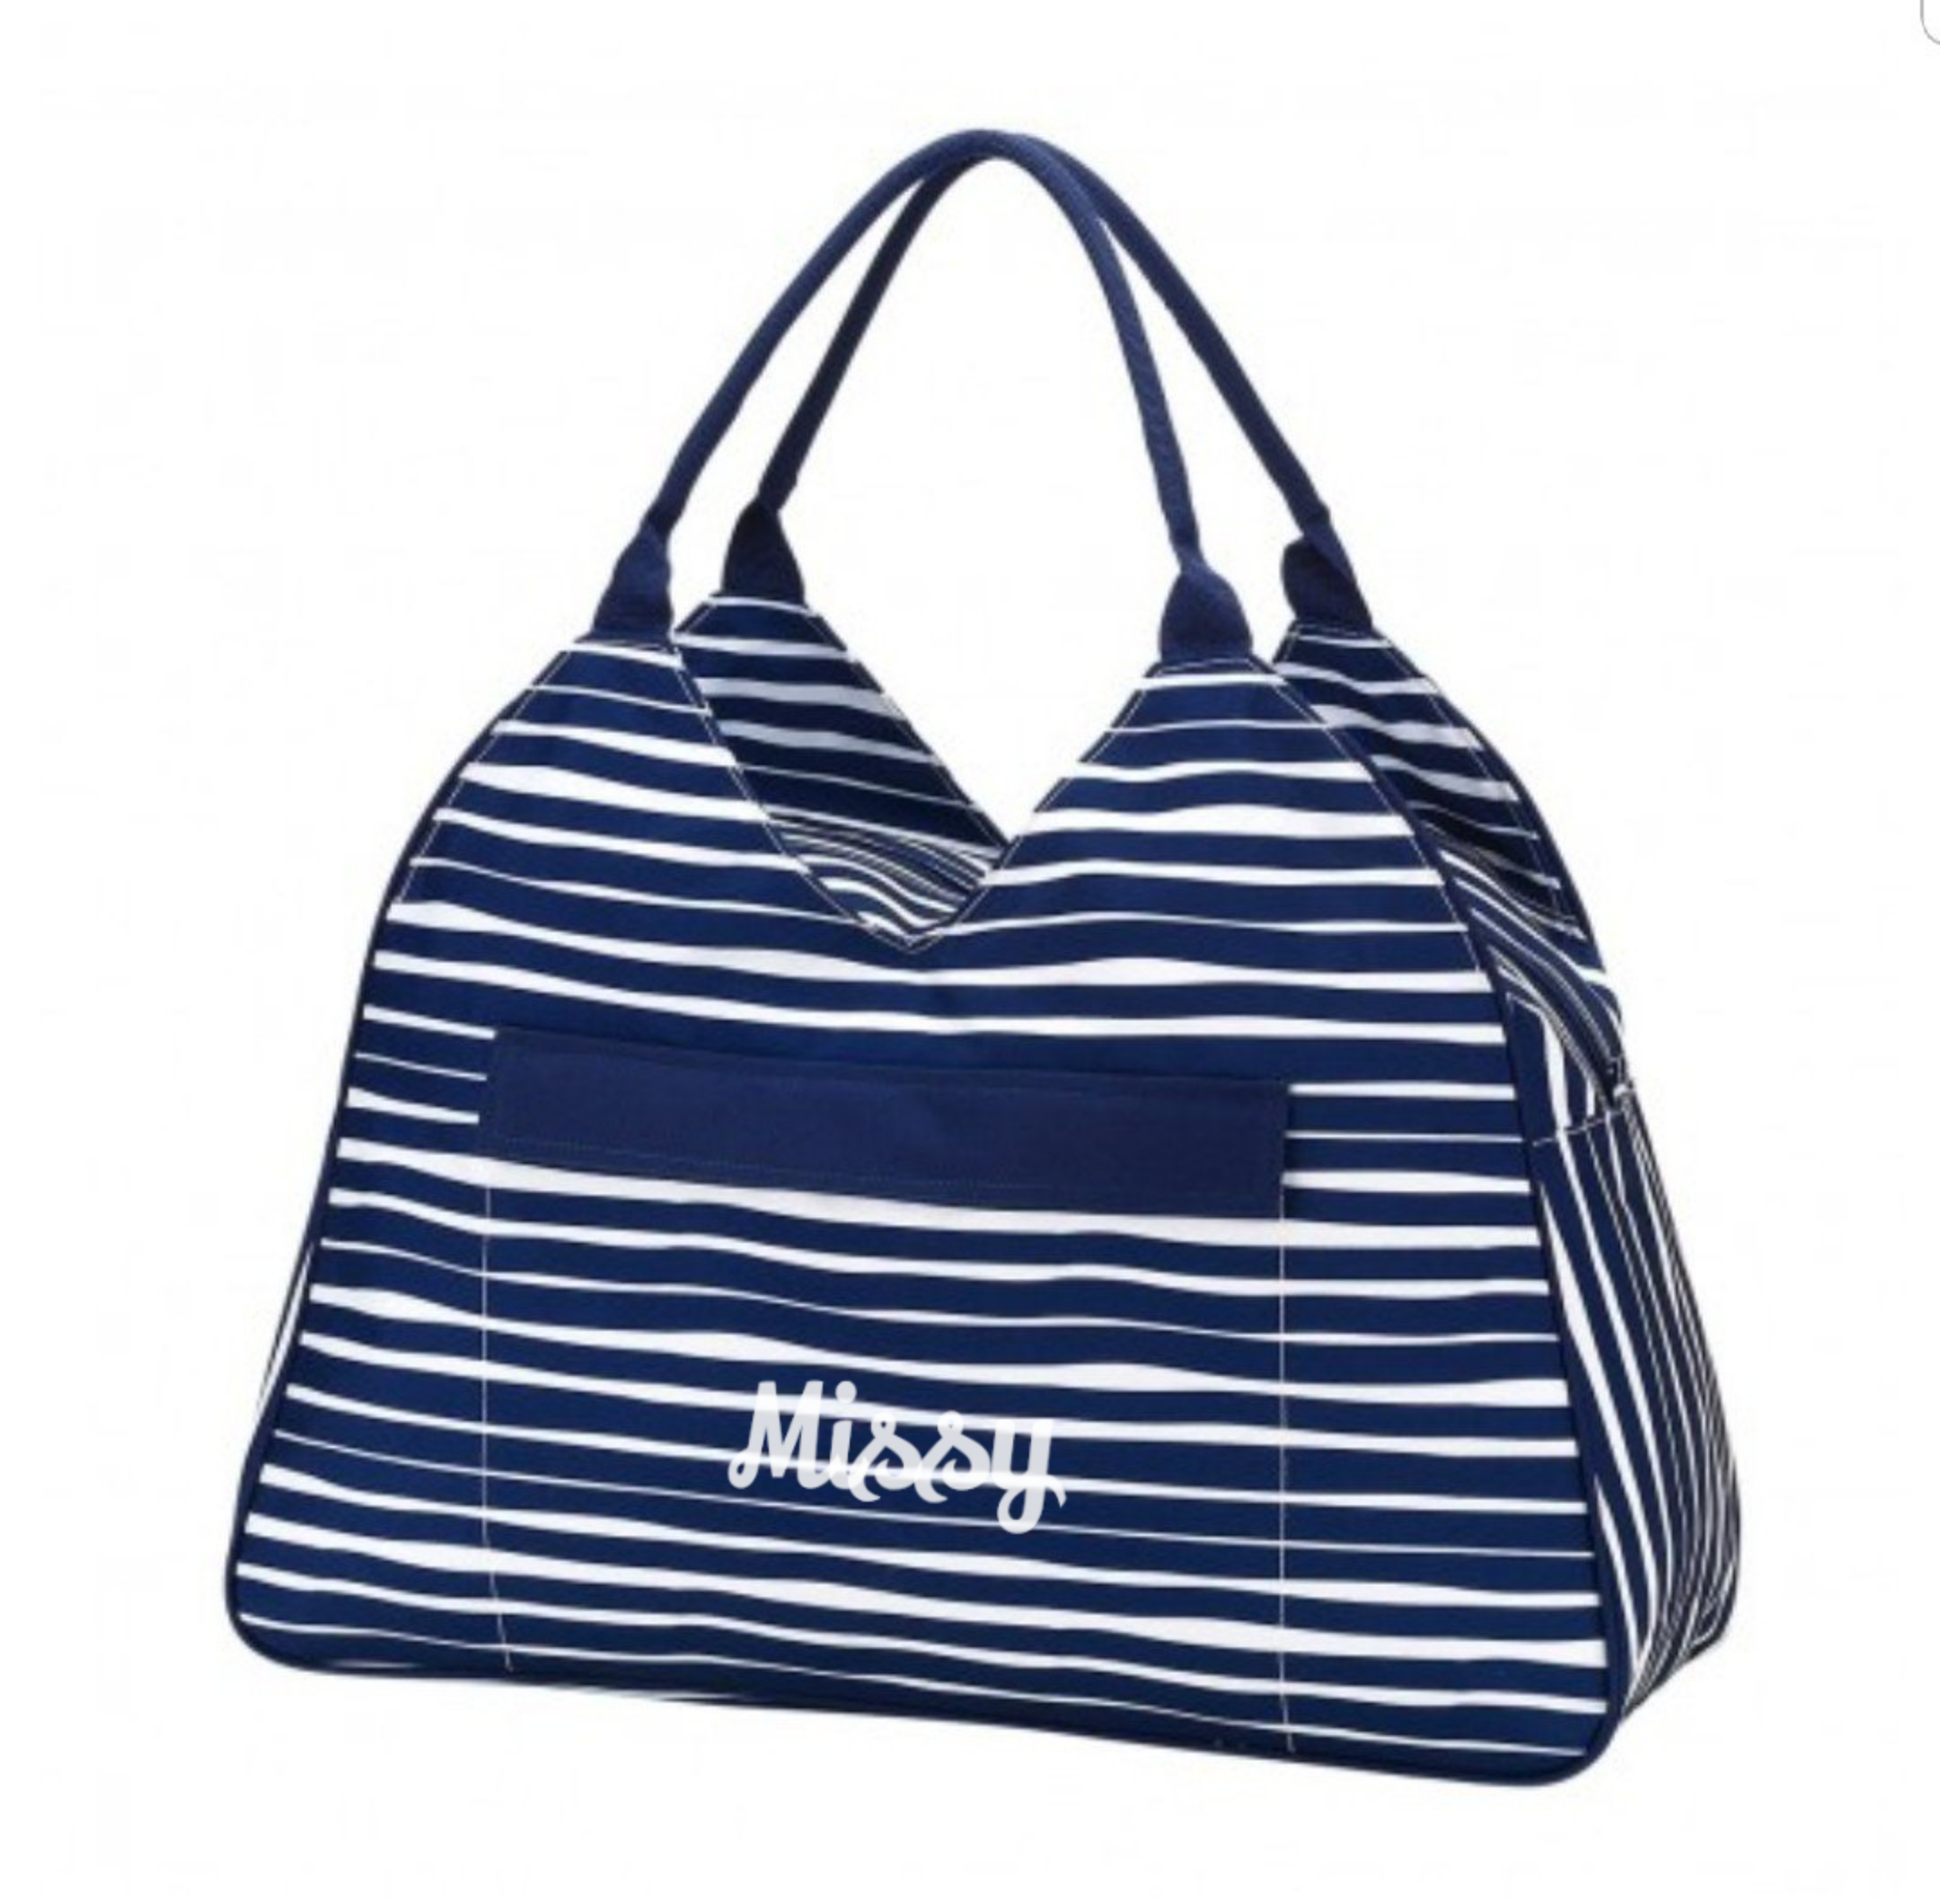 Monogrammed Beach Bag- Choose your style!